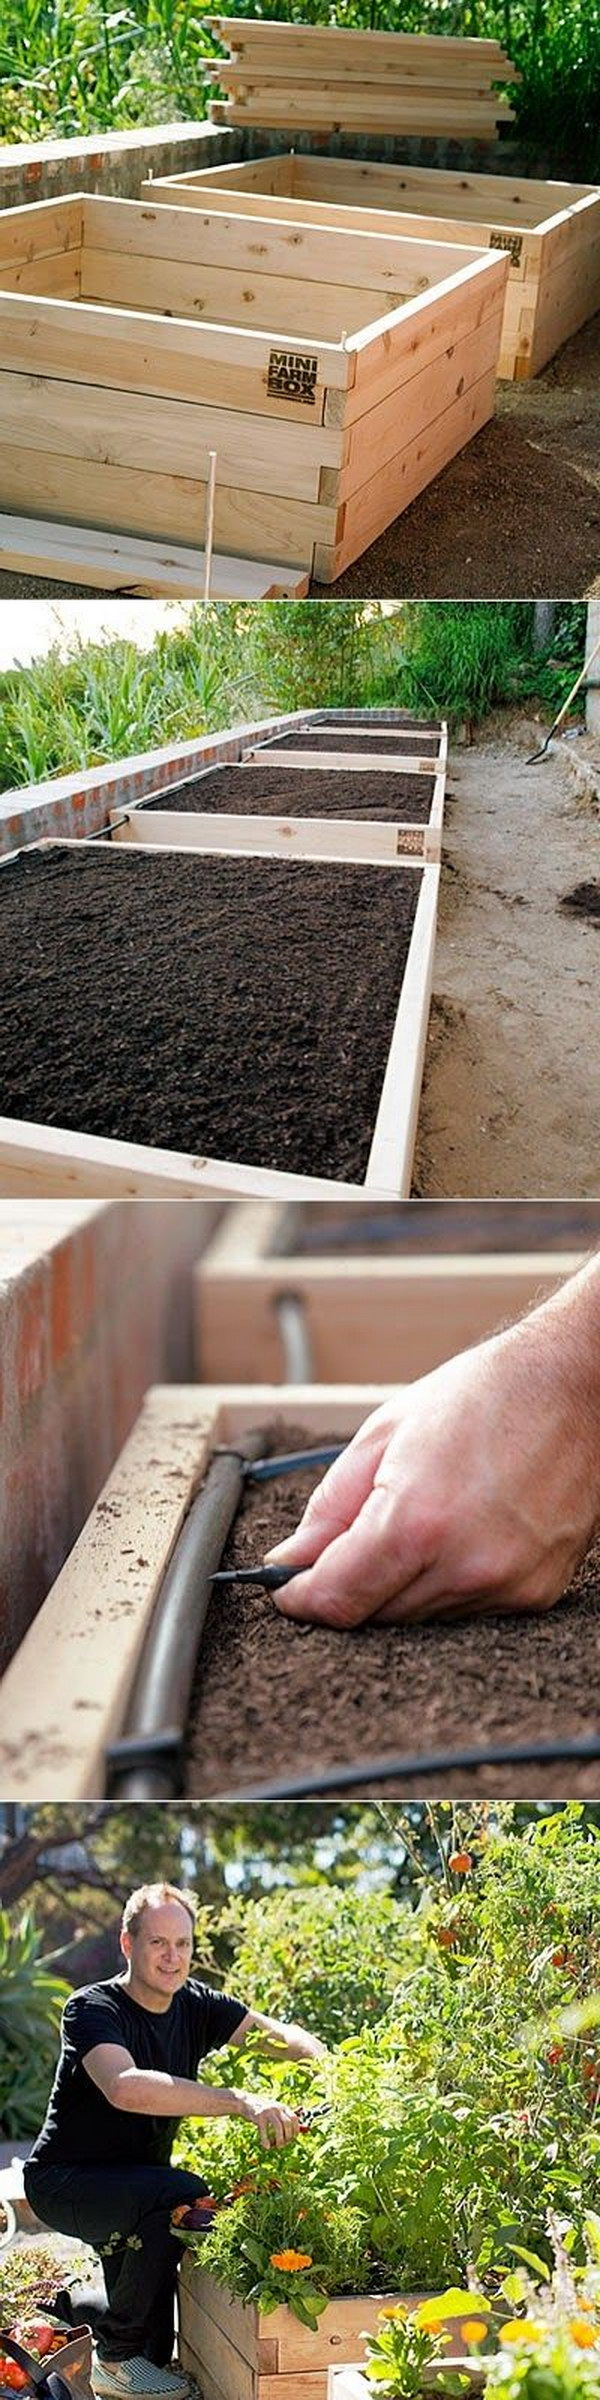 Self-Watering Raised-Bed Vegetable Garden.